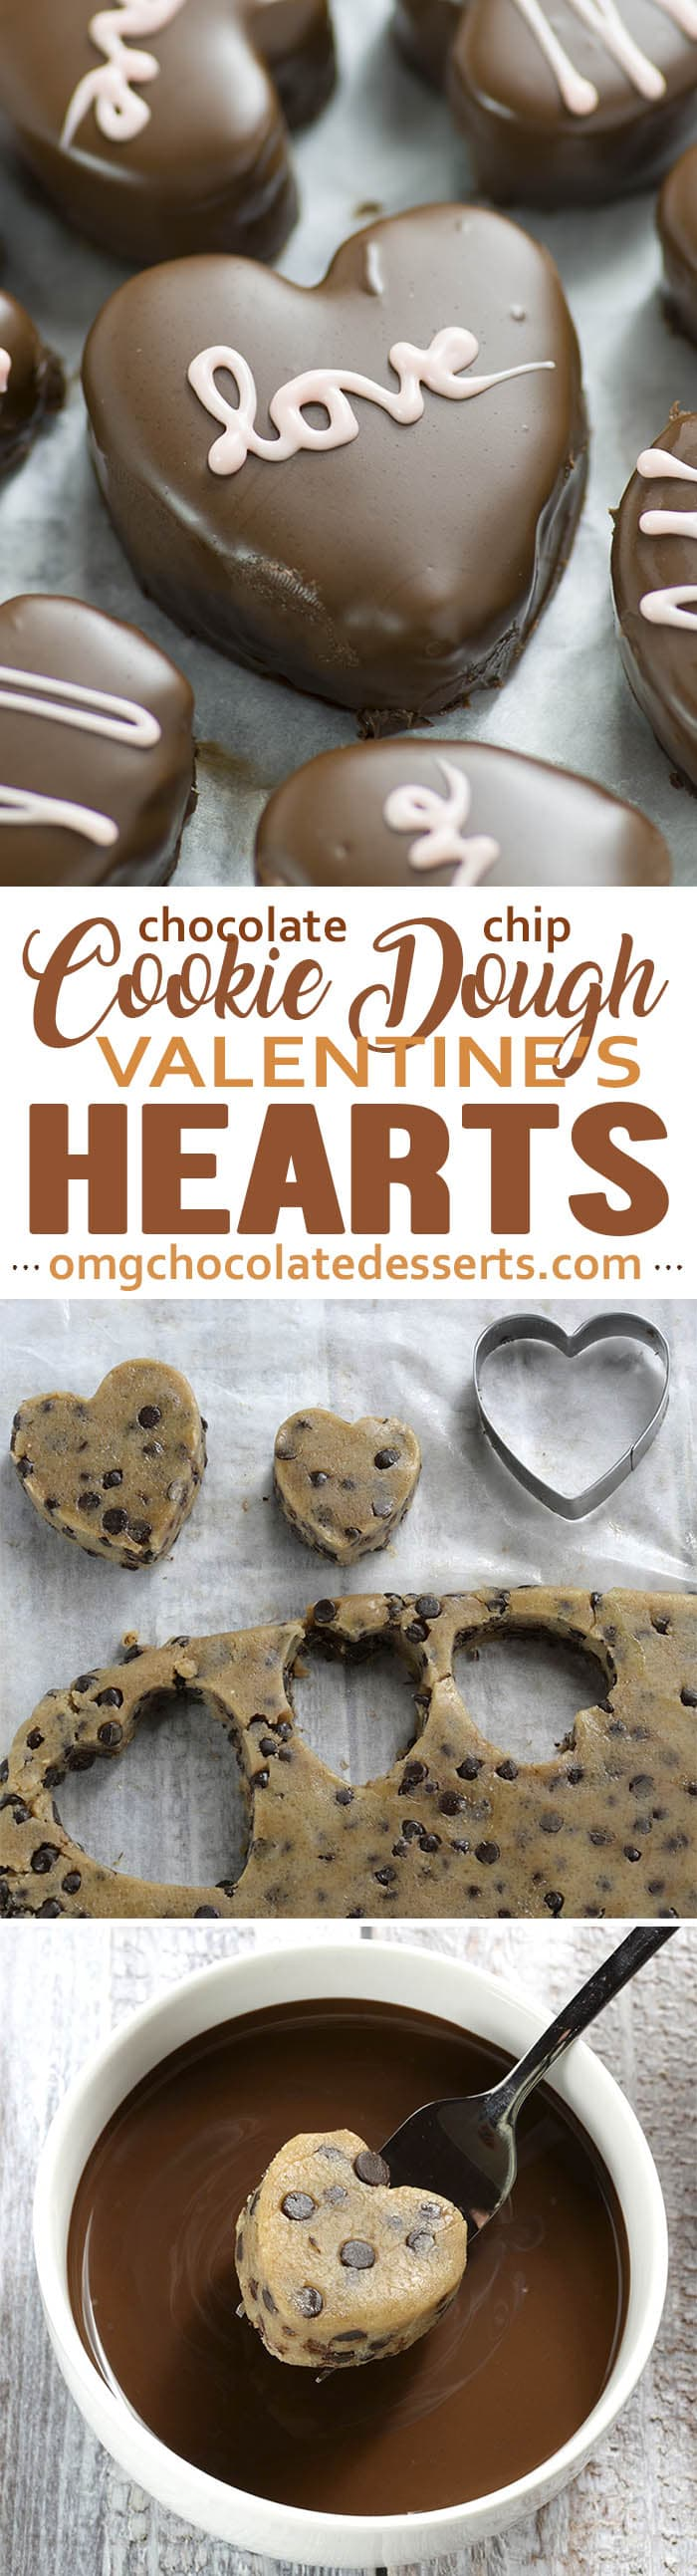 These adorable no-bake chocolate covered Cookie Dough Hearts are the perfect homemade chocolate treat for Valentine's Day - Cookie Dough Valentines Hearts.